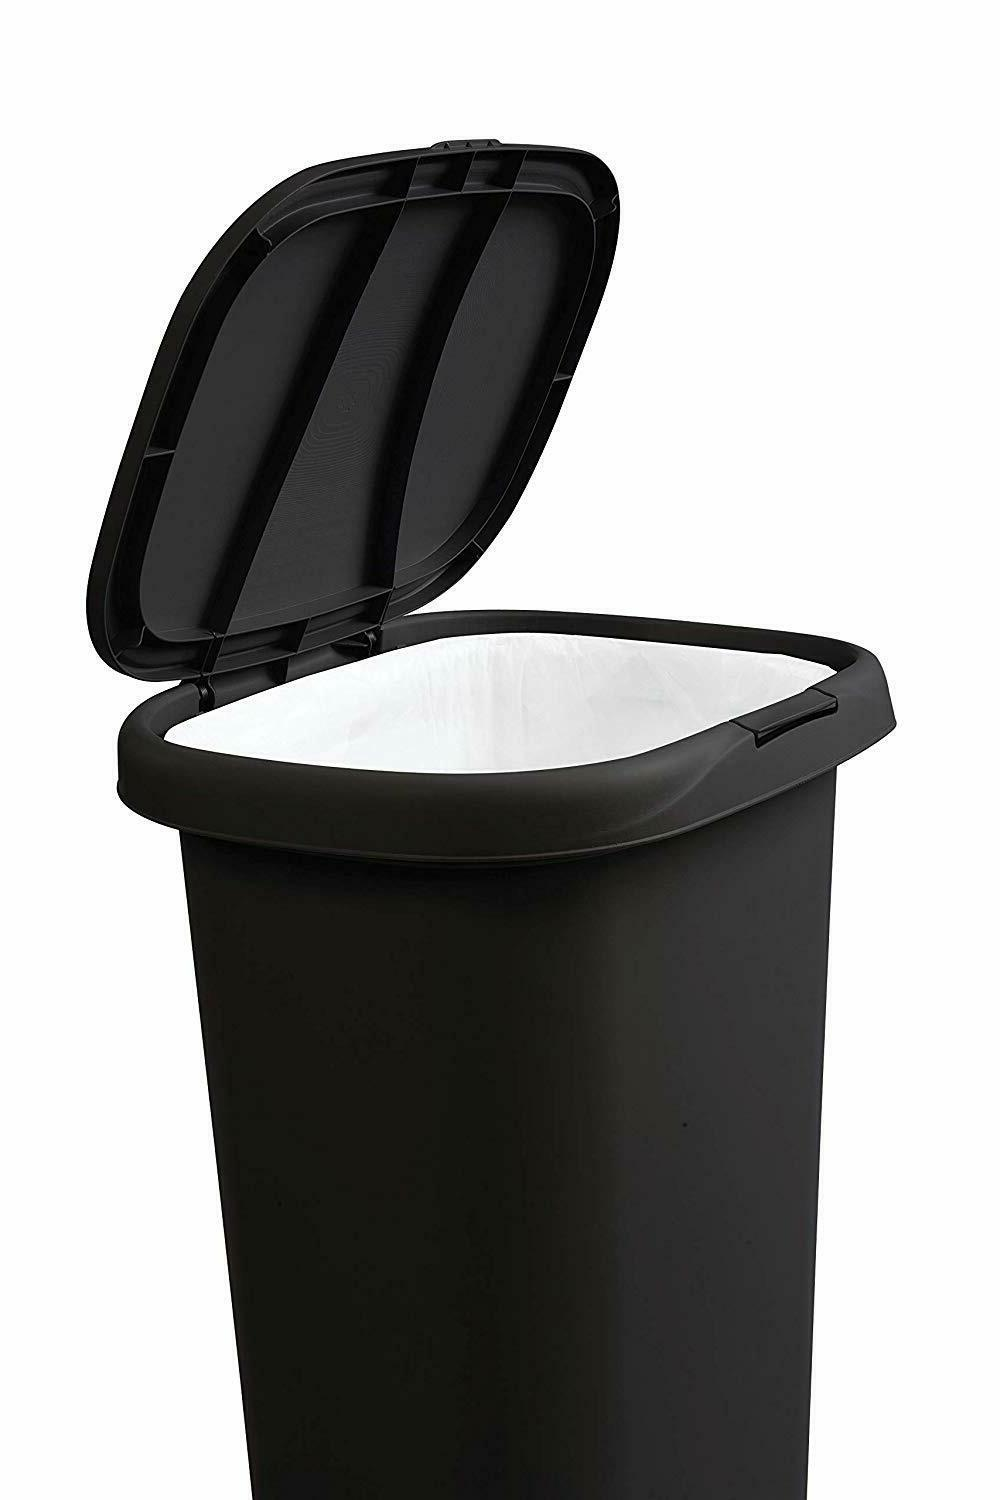 Rubbermaid Spring-Top Trash Can for Home, and